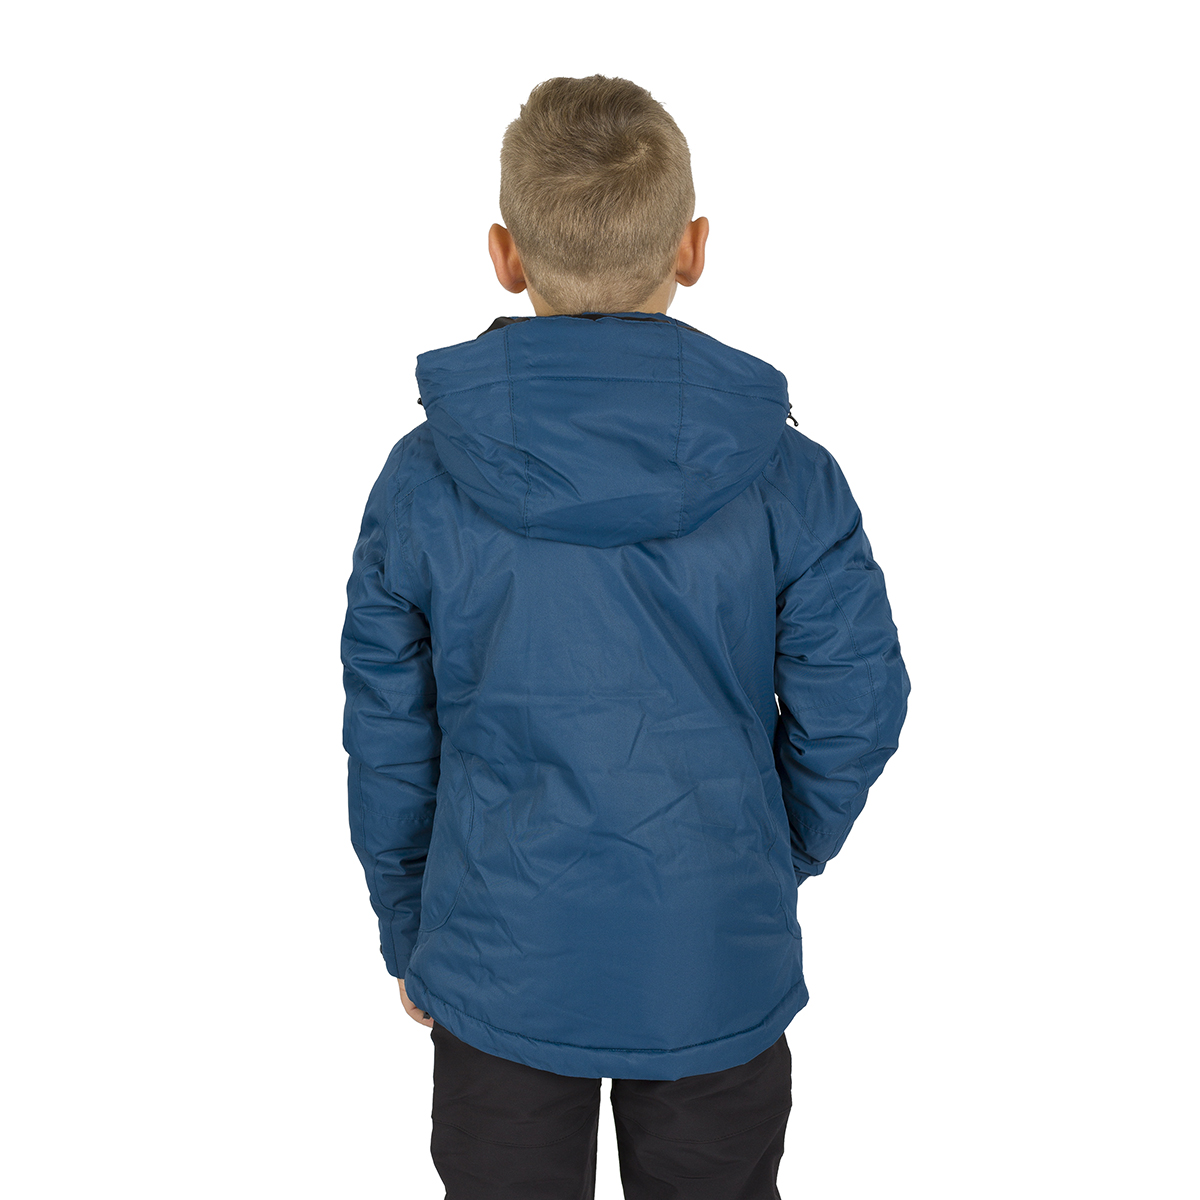 NALUNS KIDS PADDED JACKET WITH HOOD BLUE